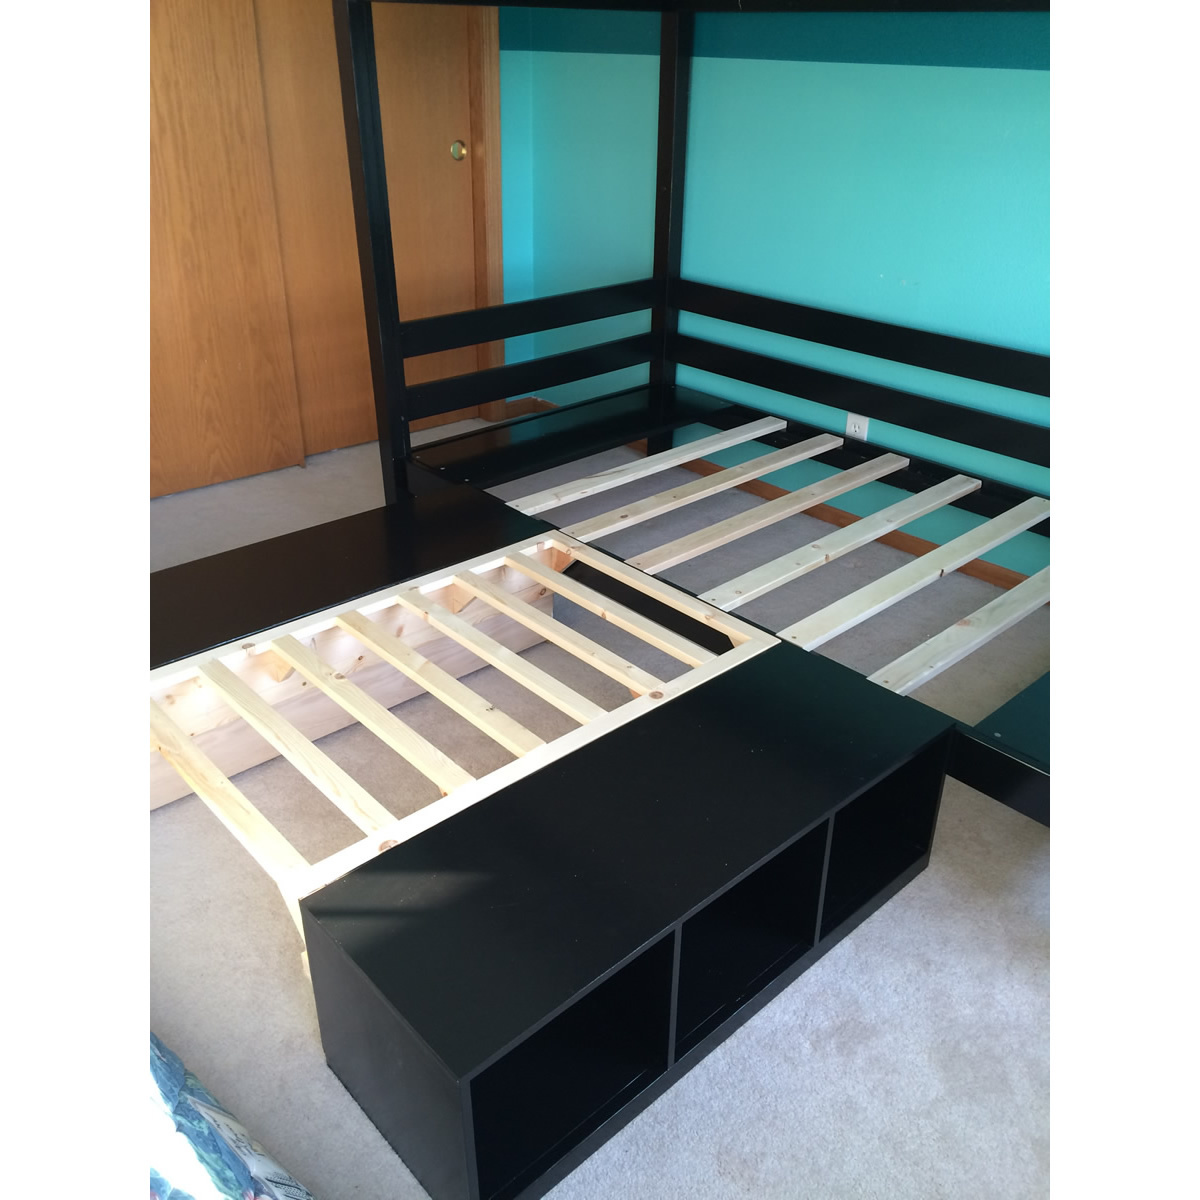 Ana White Convertible Classic Bunk Bed Diy Projects